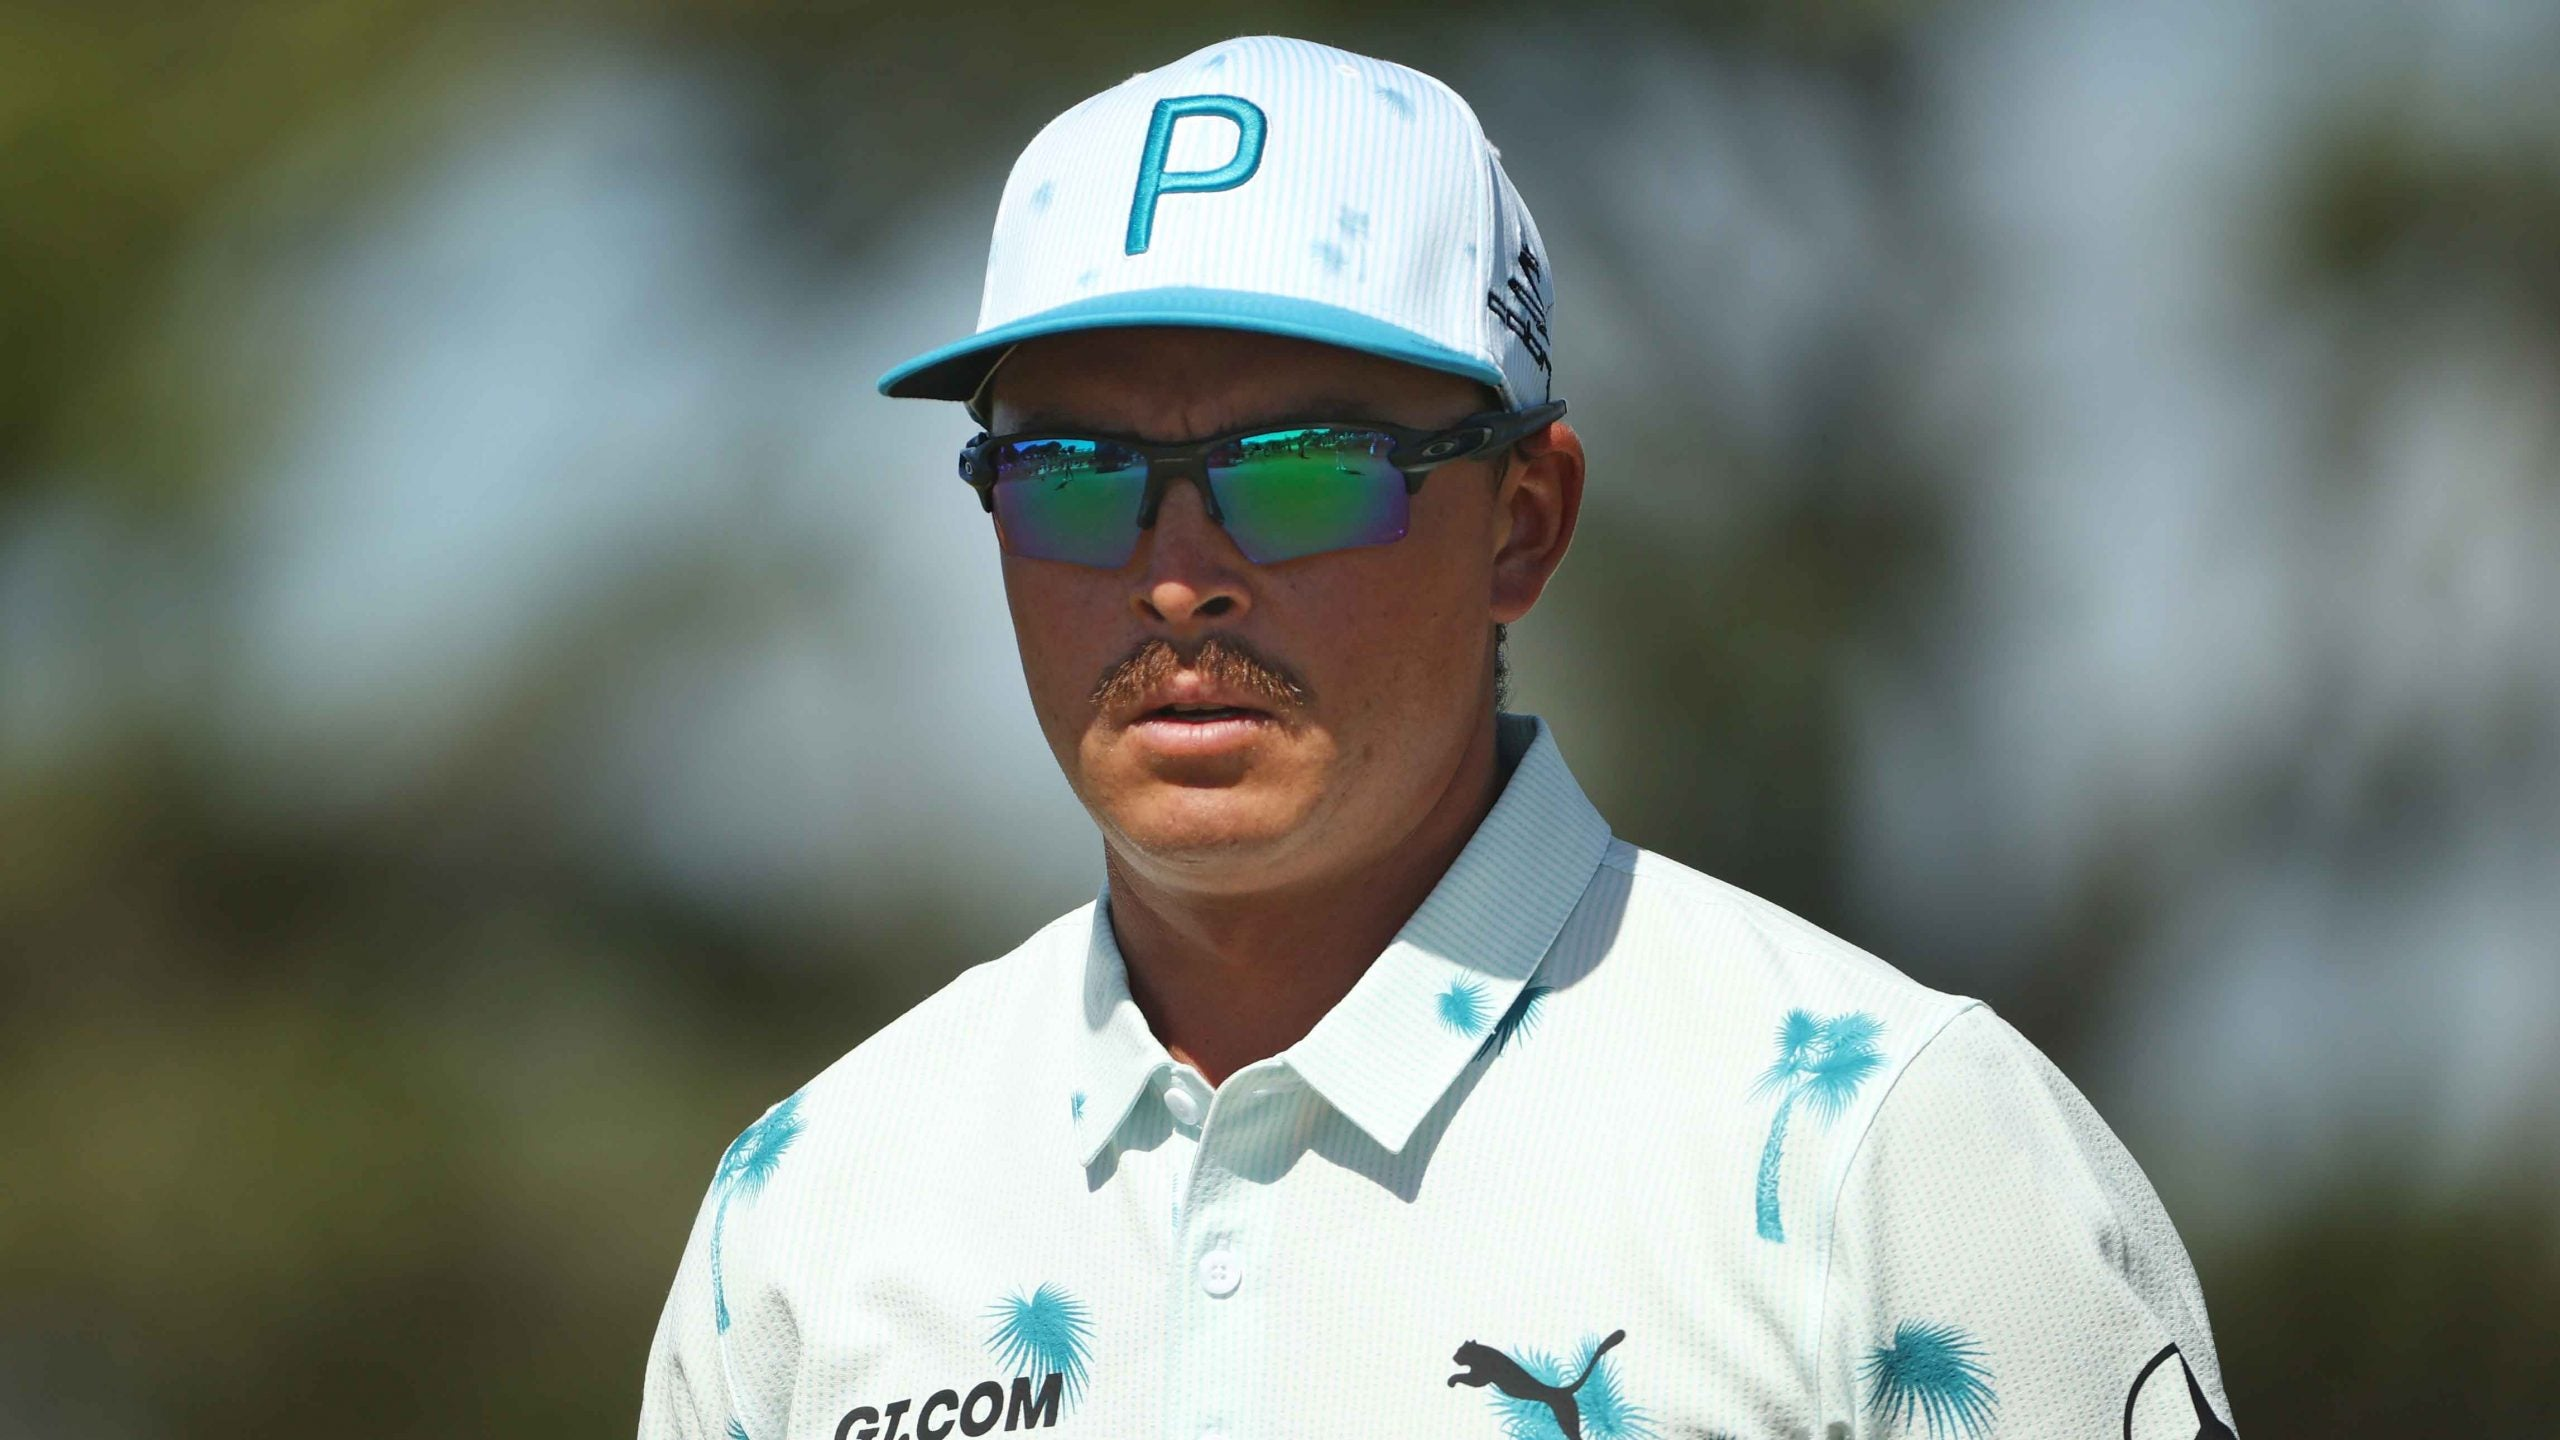 Rickie Fowler admits he had trouble seeing objects from 150 yards out